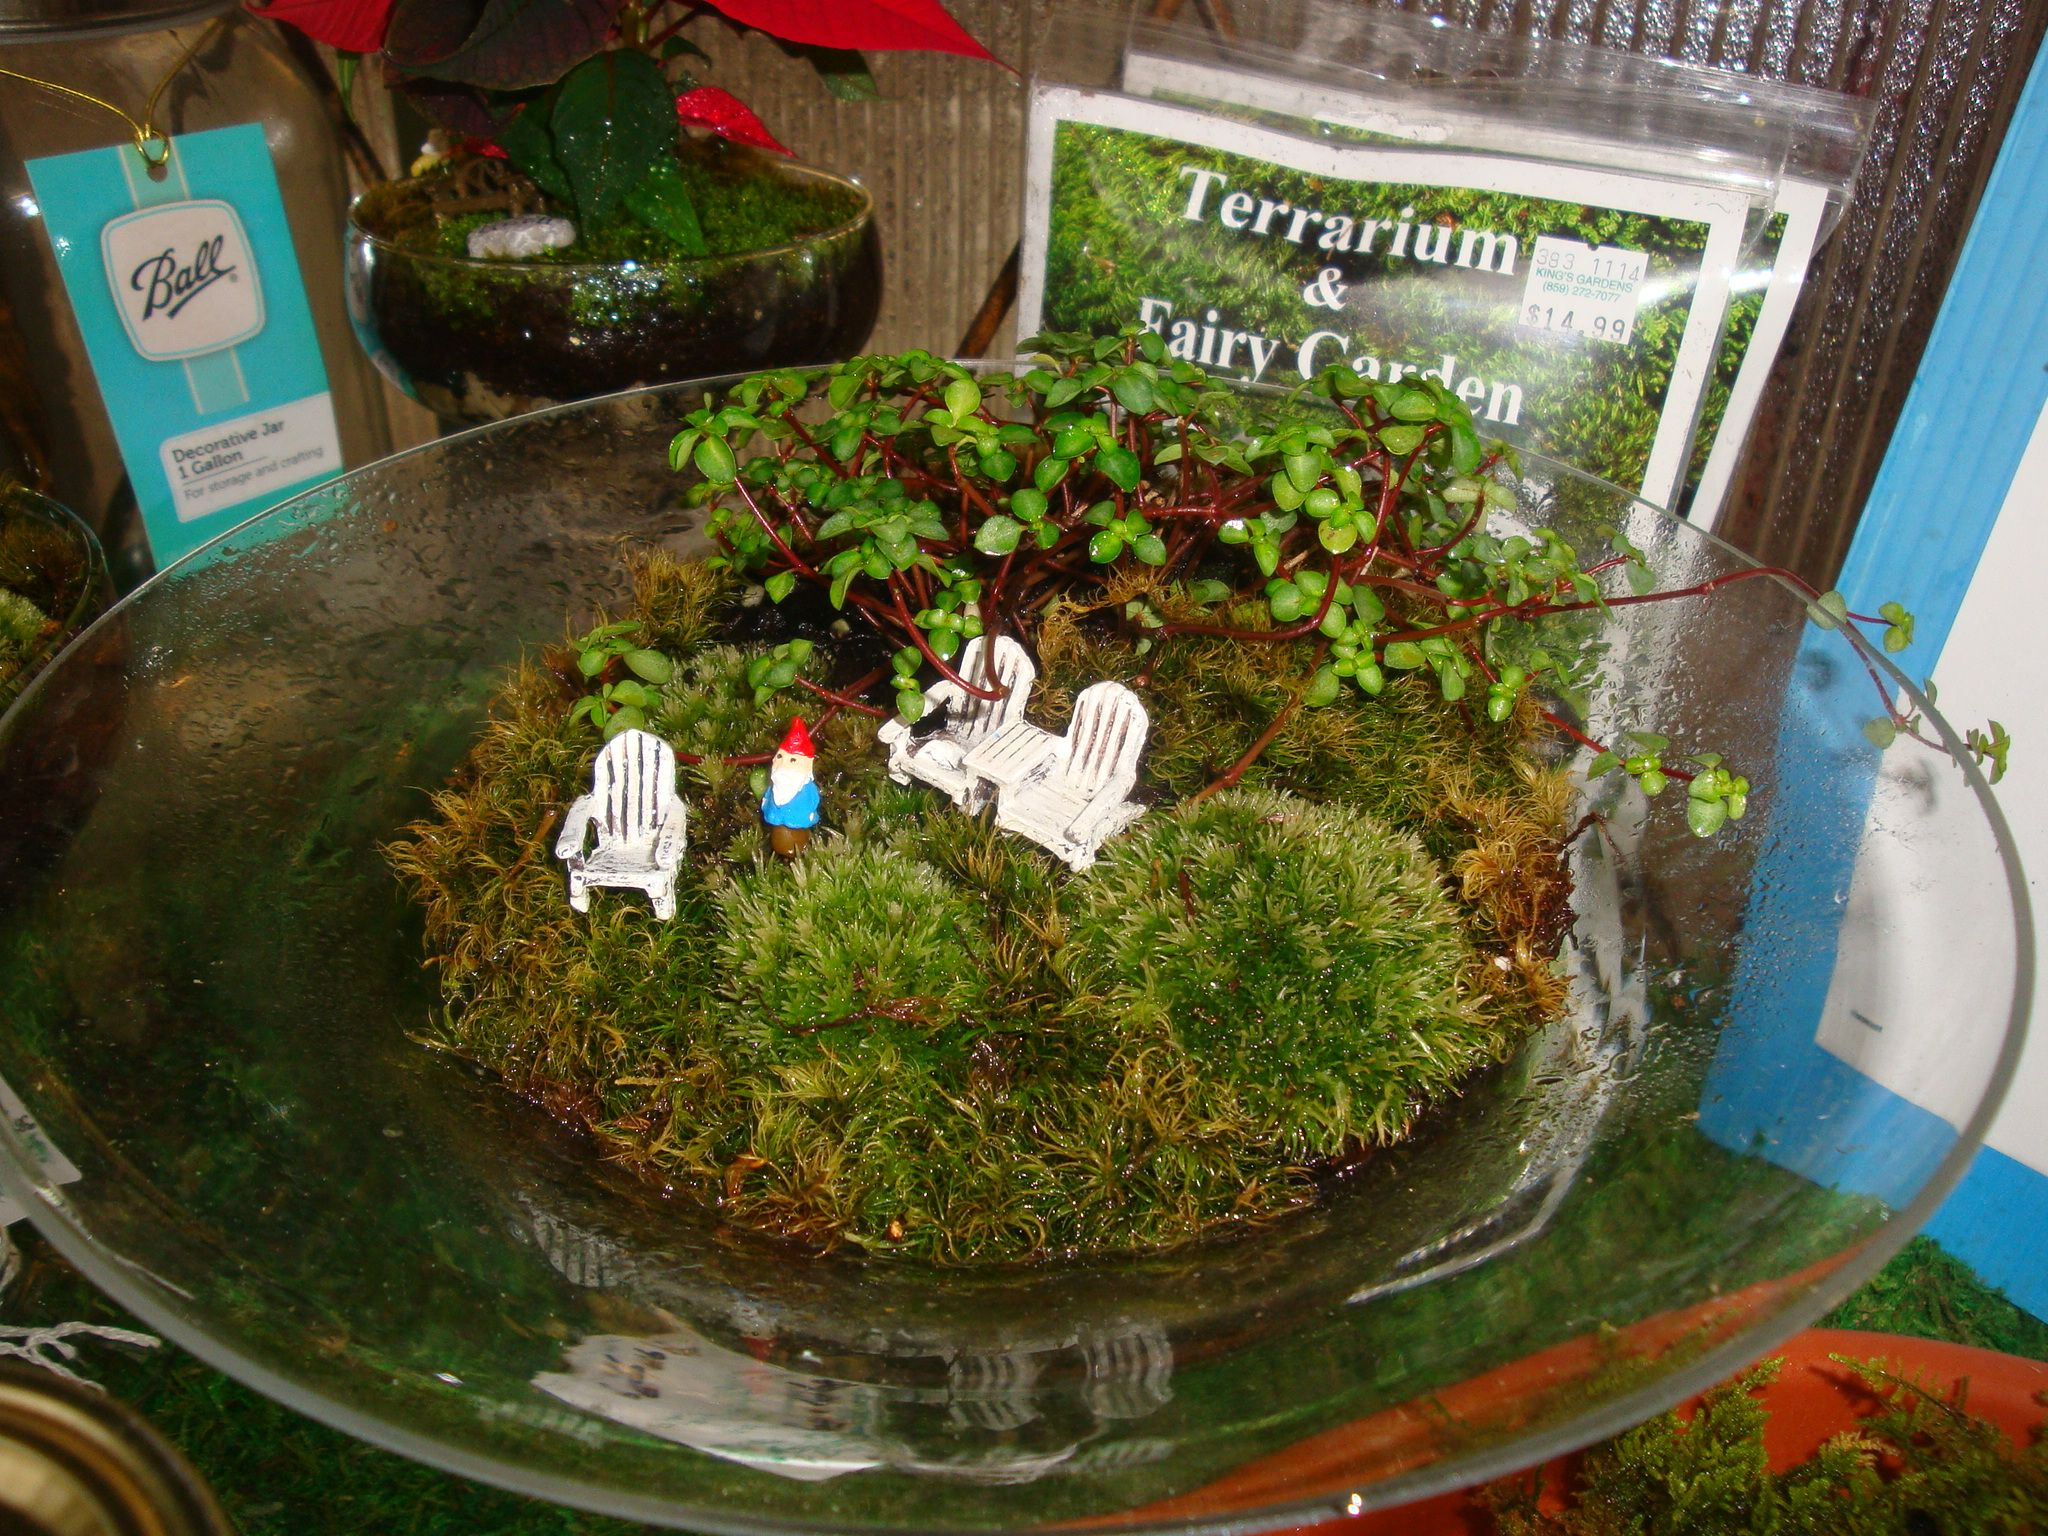 How cute is this moss planting with micro-mini gnome and chairs!